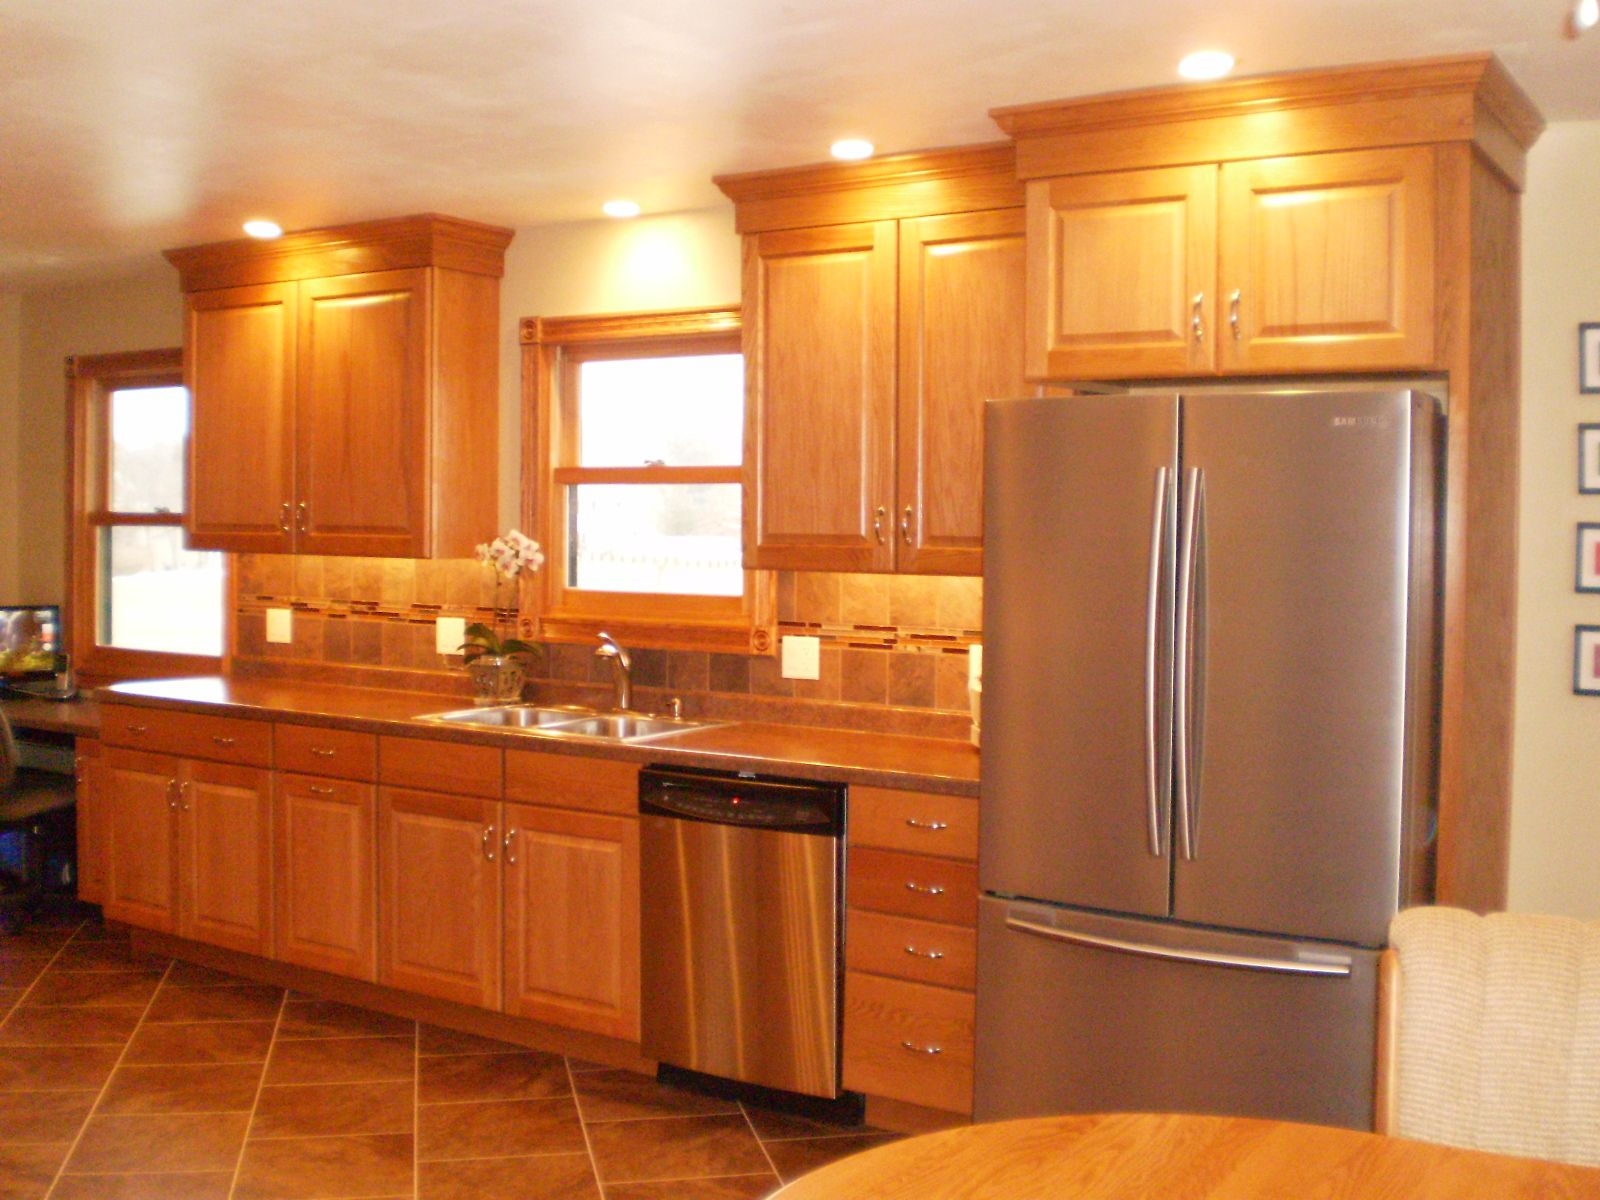 Oak Cabinets Luxury Vinyl Floor Tile Tile Backsplash And